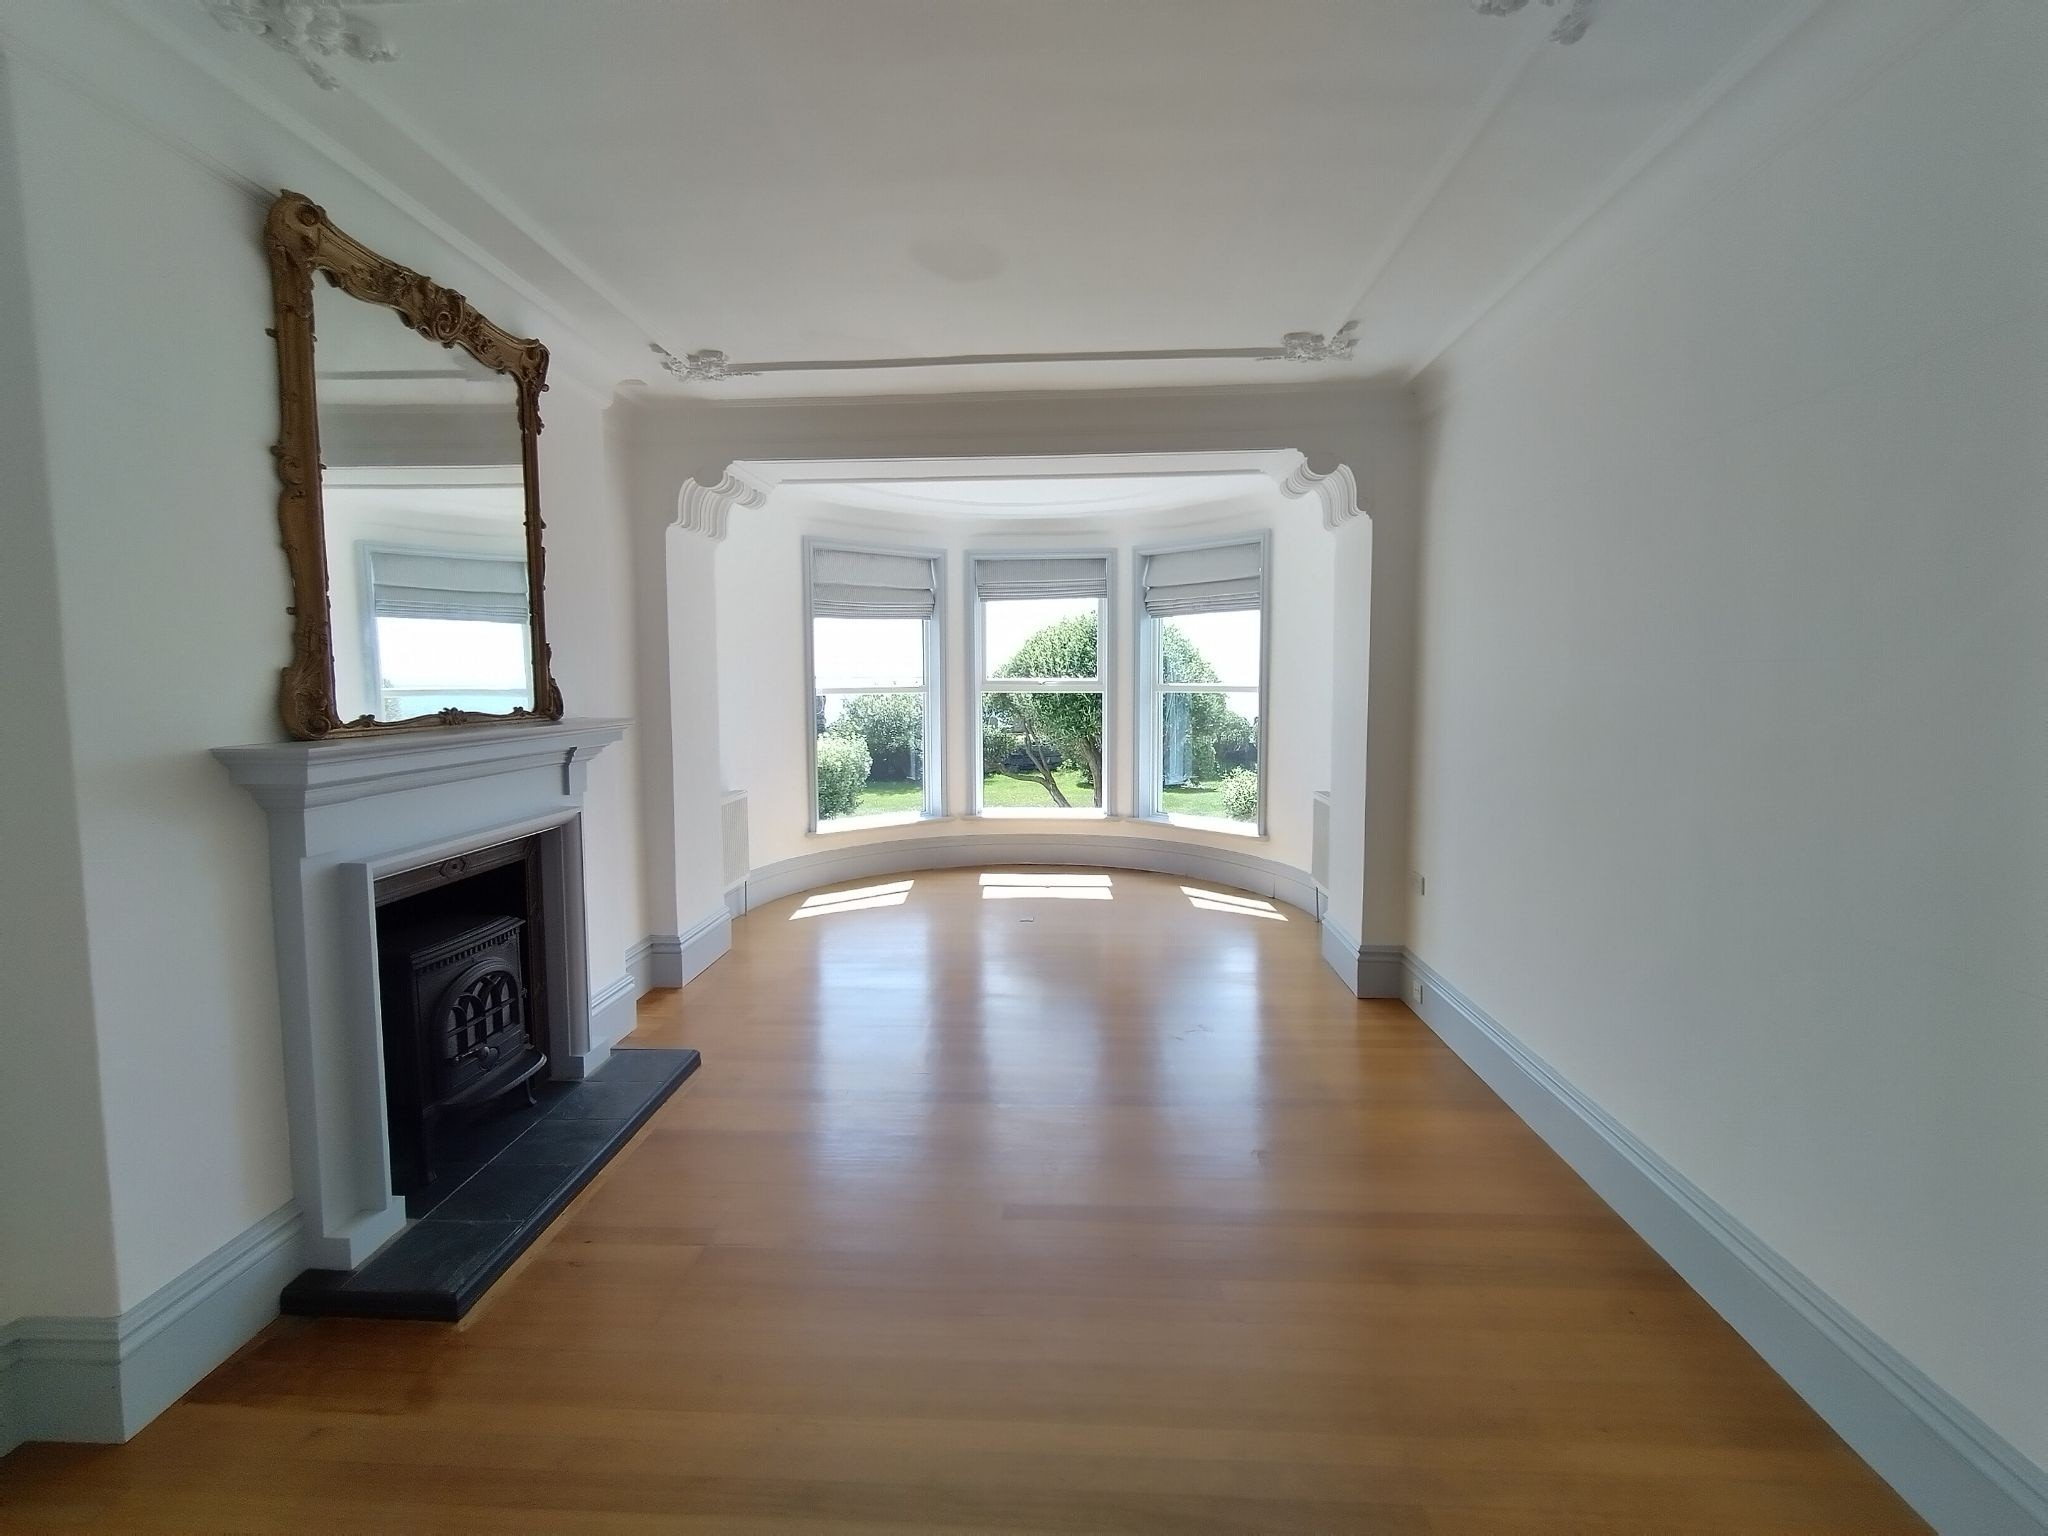 6 bedroom detached house For Sale in Castletown - Photograph 21